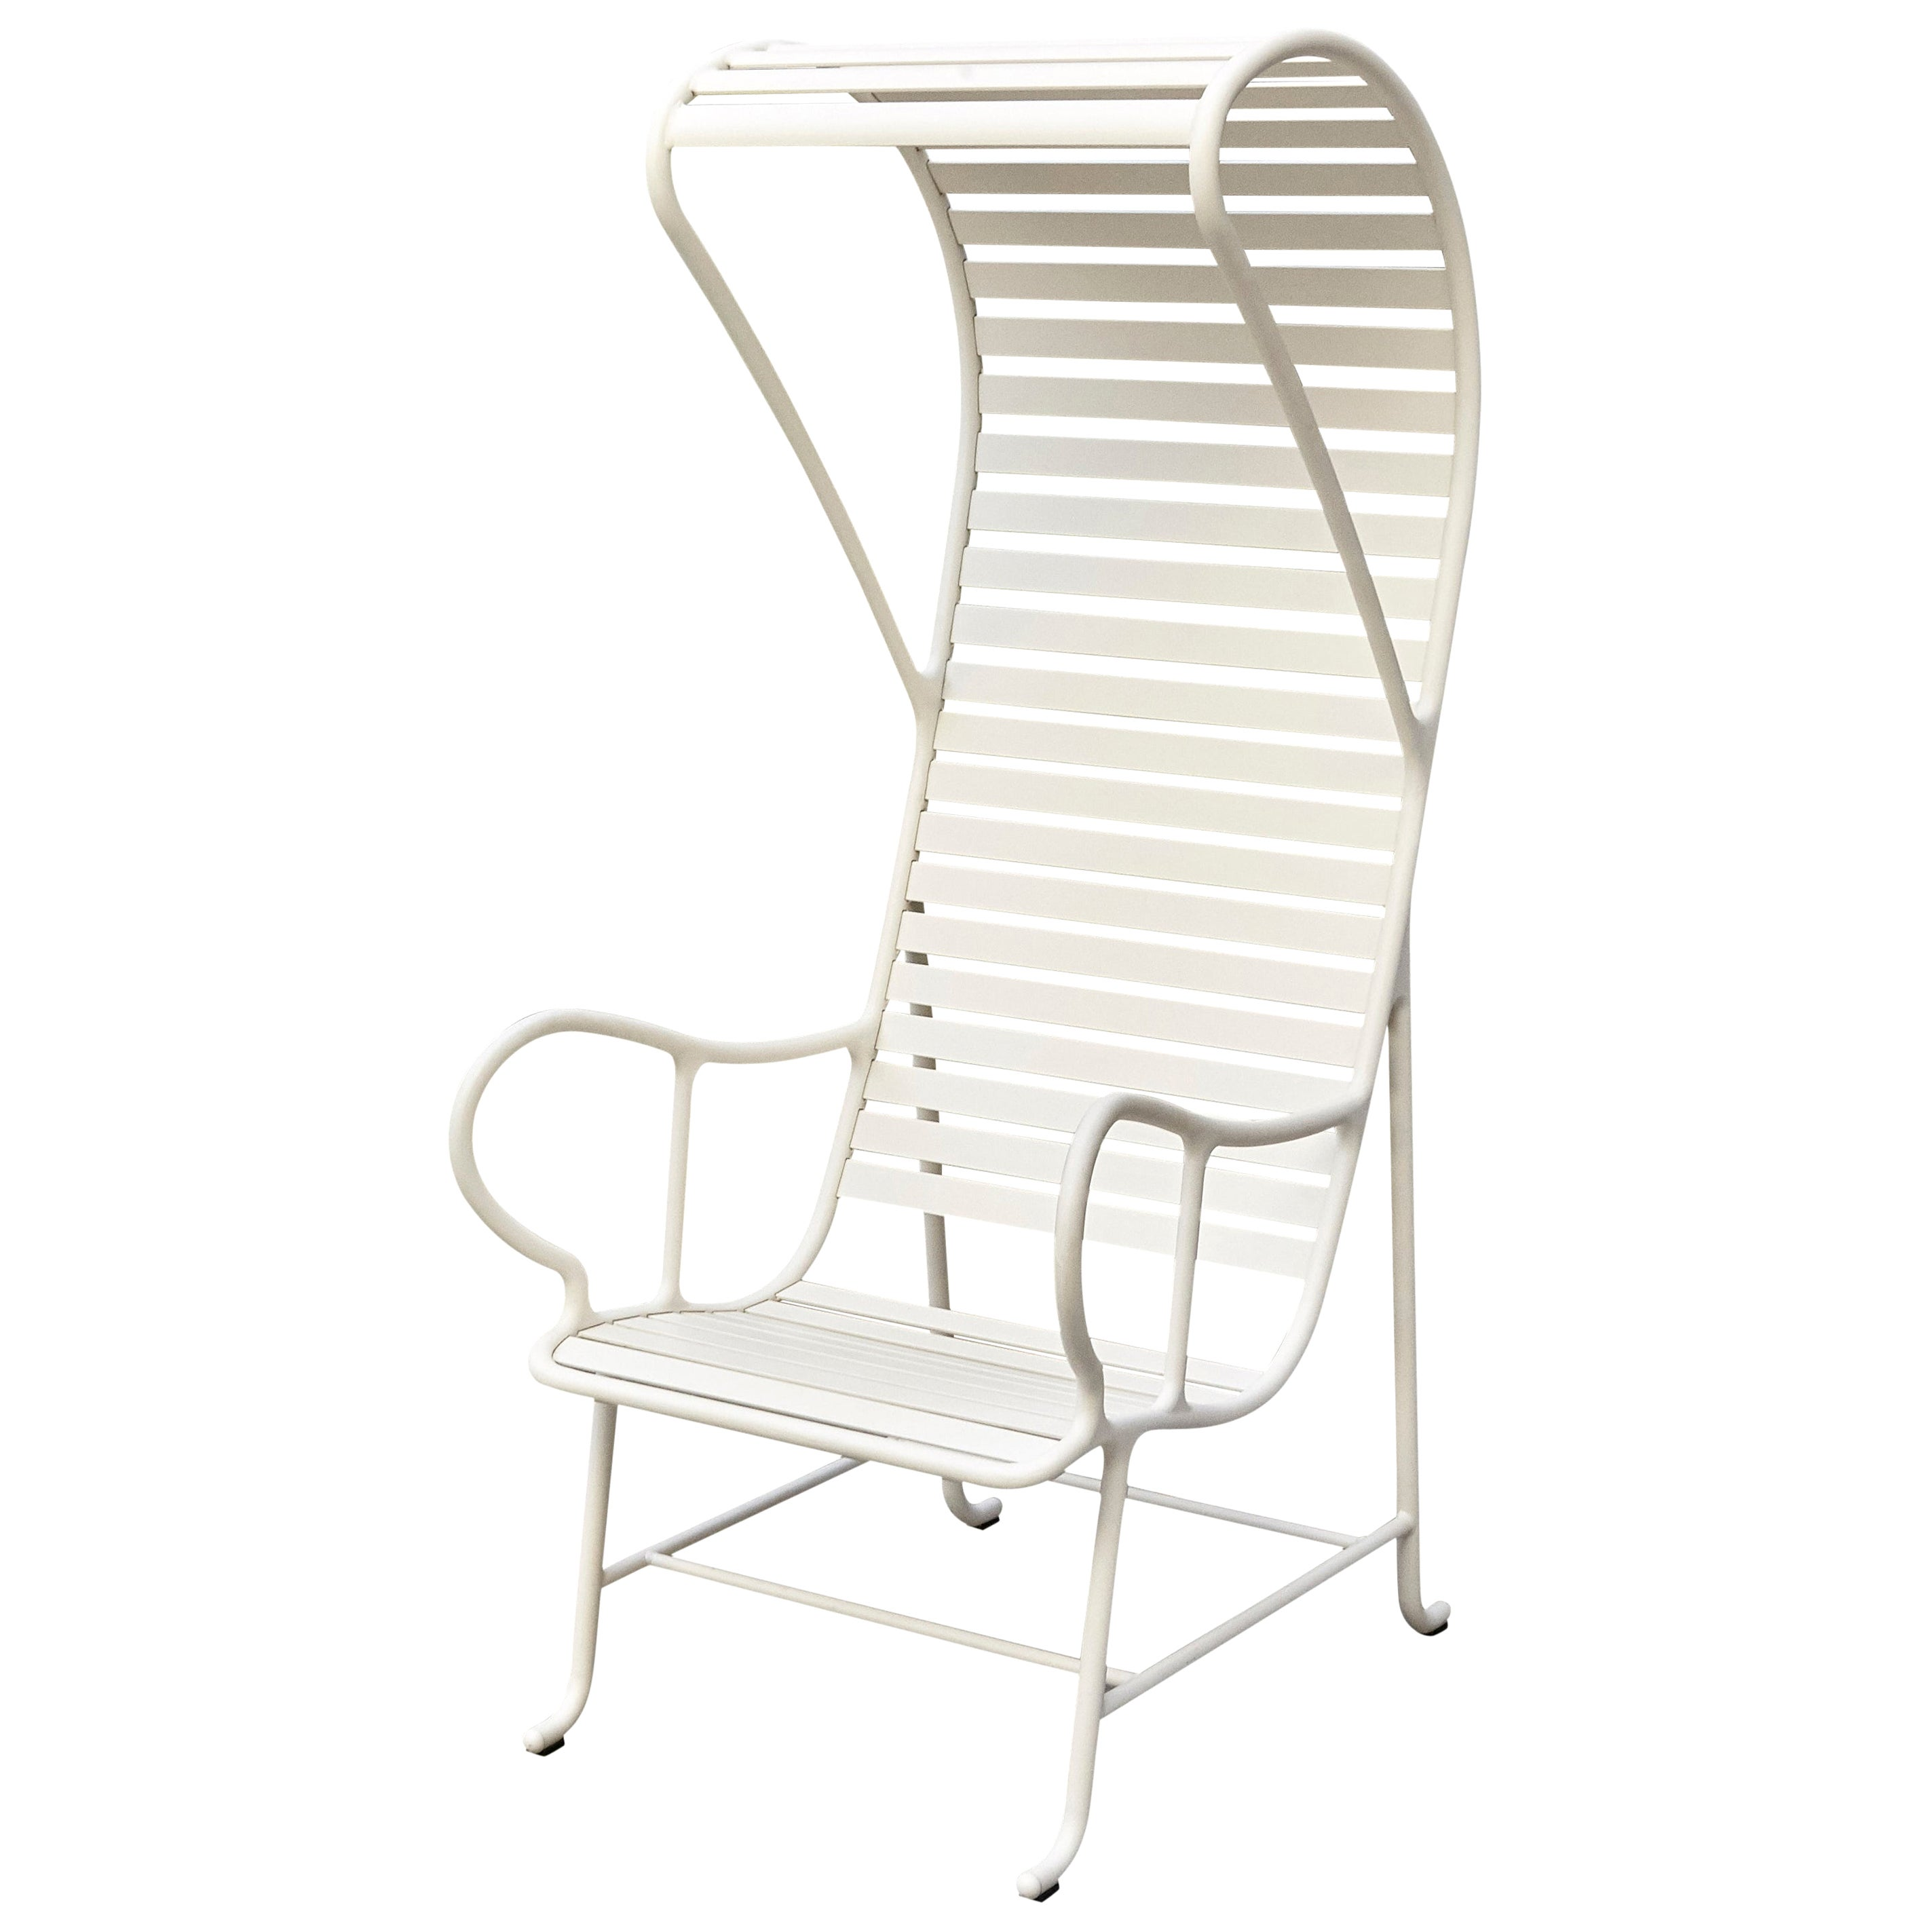 Jaime Hayon Contemporary White Gardenias Outdoor Armchair with Pergola